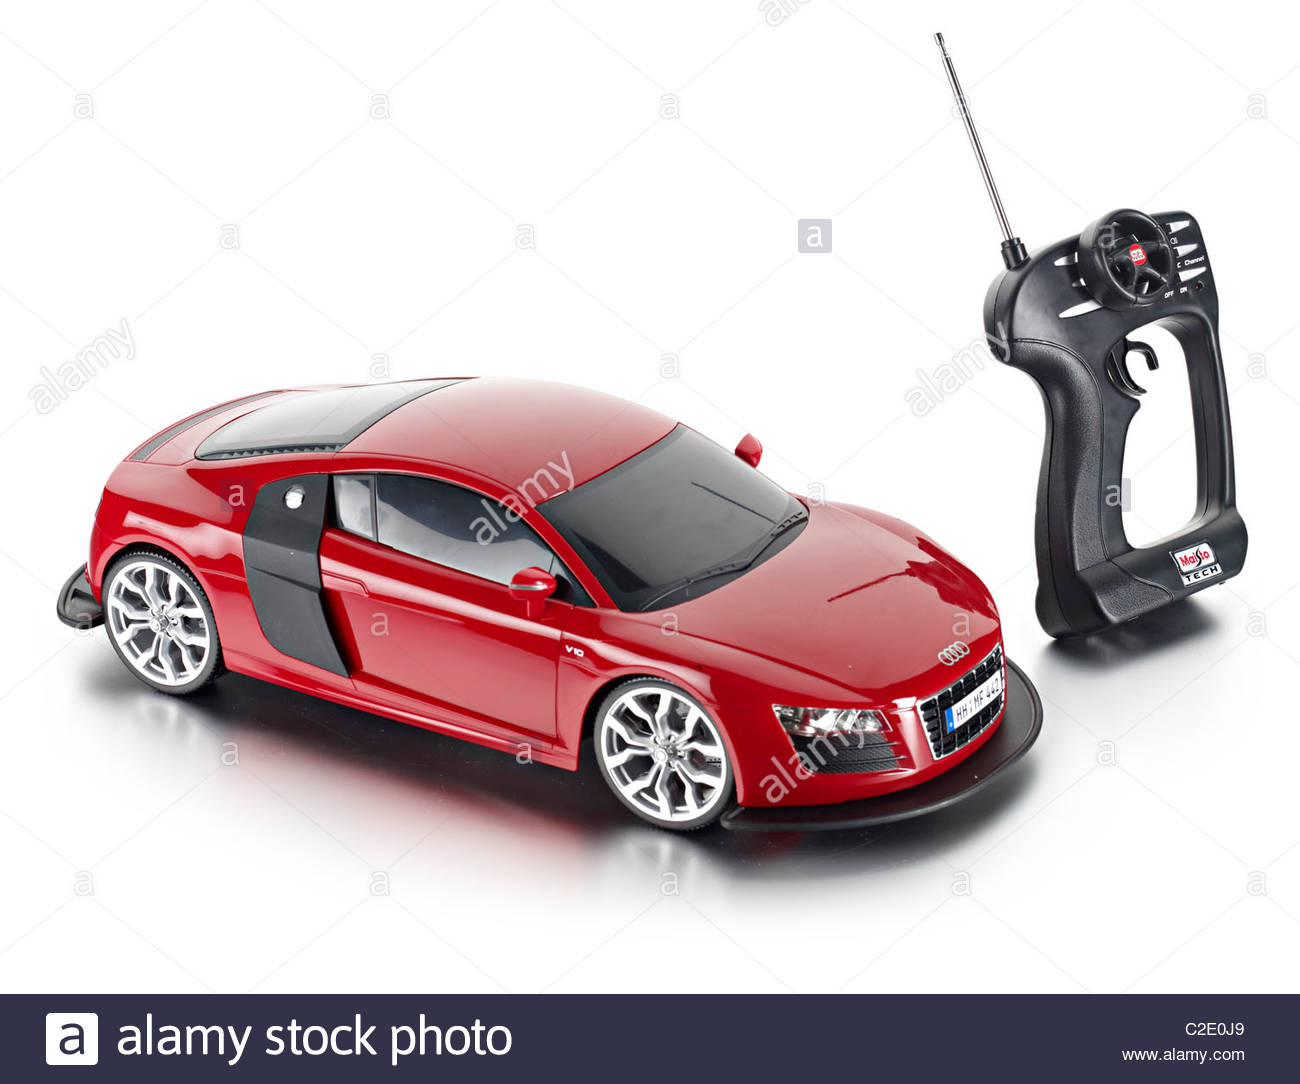 Remote Control Car Toy Stock Photos Remote Control Car Toy Stock - Audi remote control car